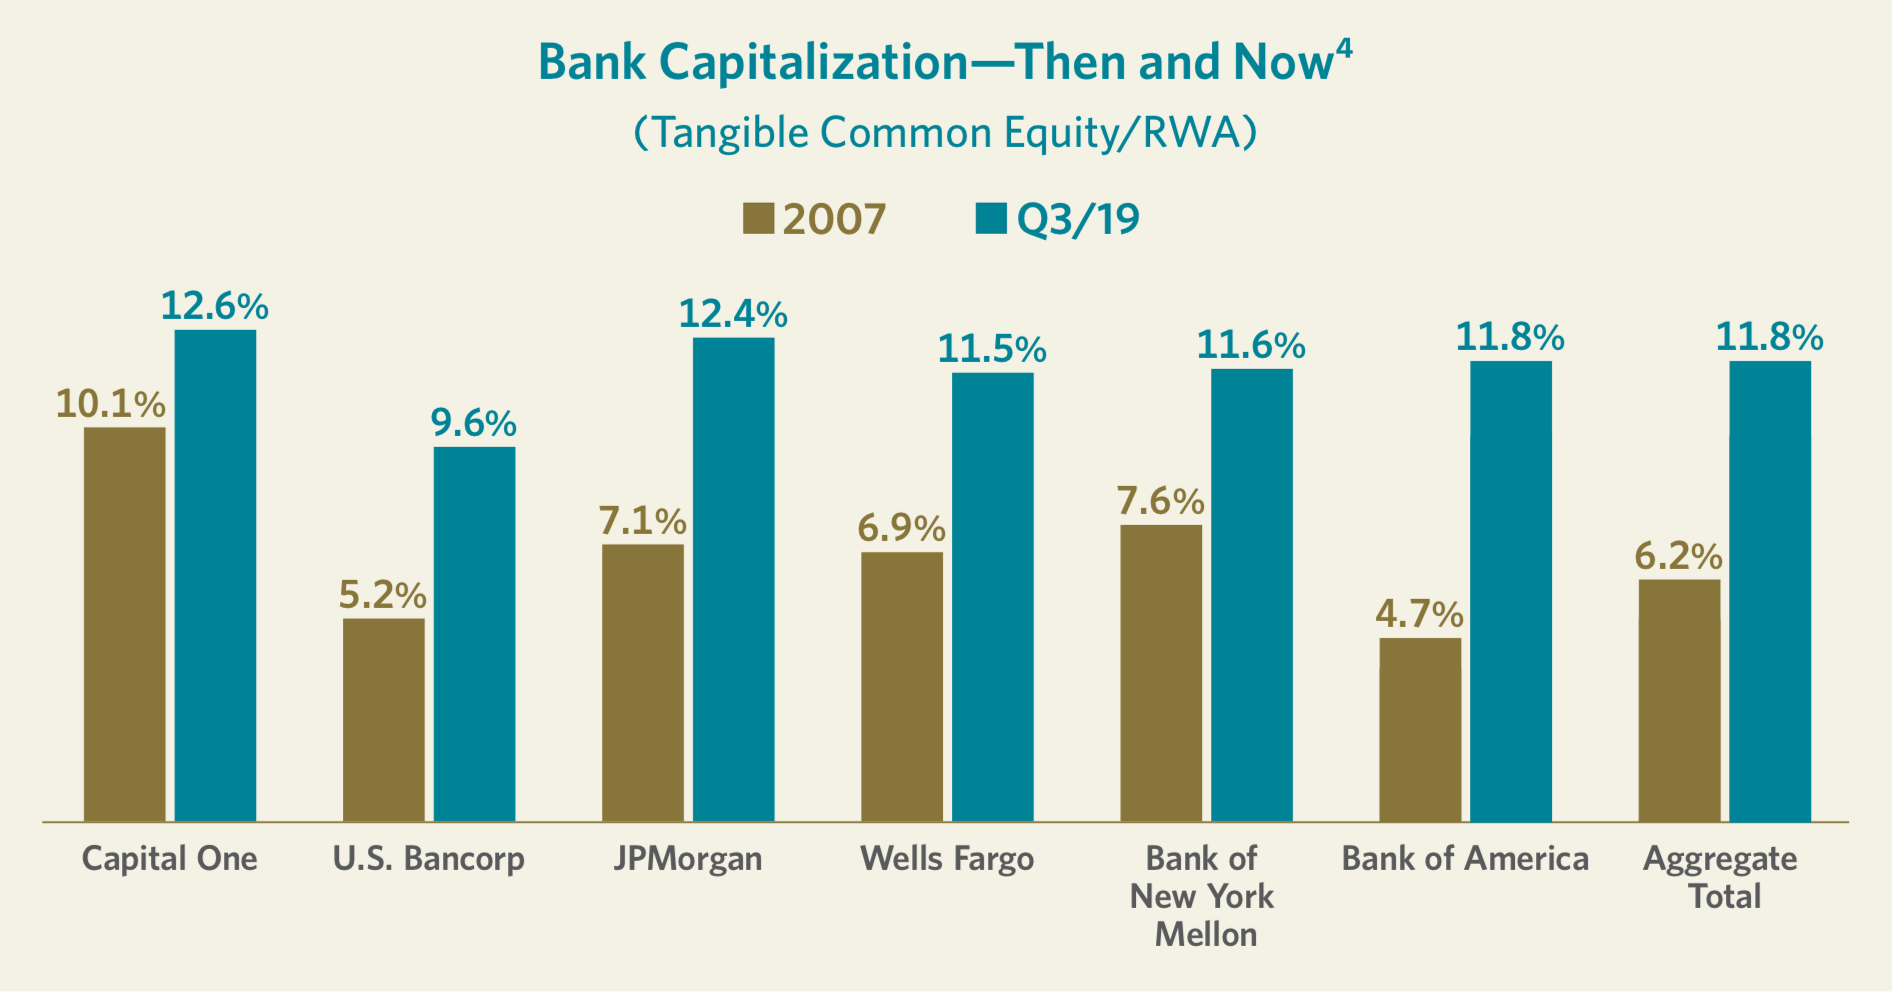 Bank Capitalization—Then and Now